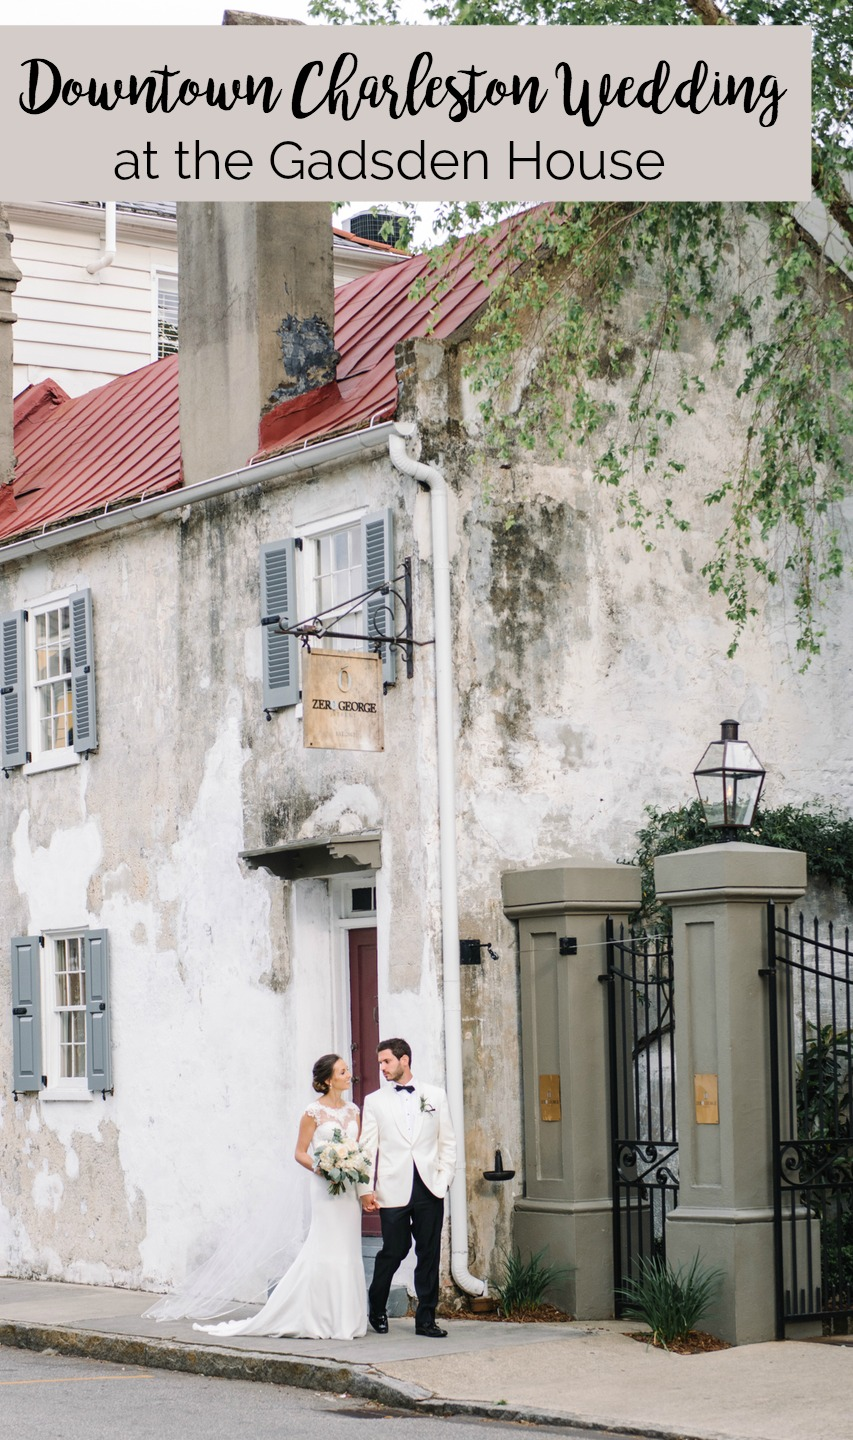 L eslie and Drew: Downtown Charleston Wedding at the Gadsden House | Palmetto State Weddings | charleston sc wedding venue | where to get married in Charleston | southern wedding inspiration